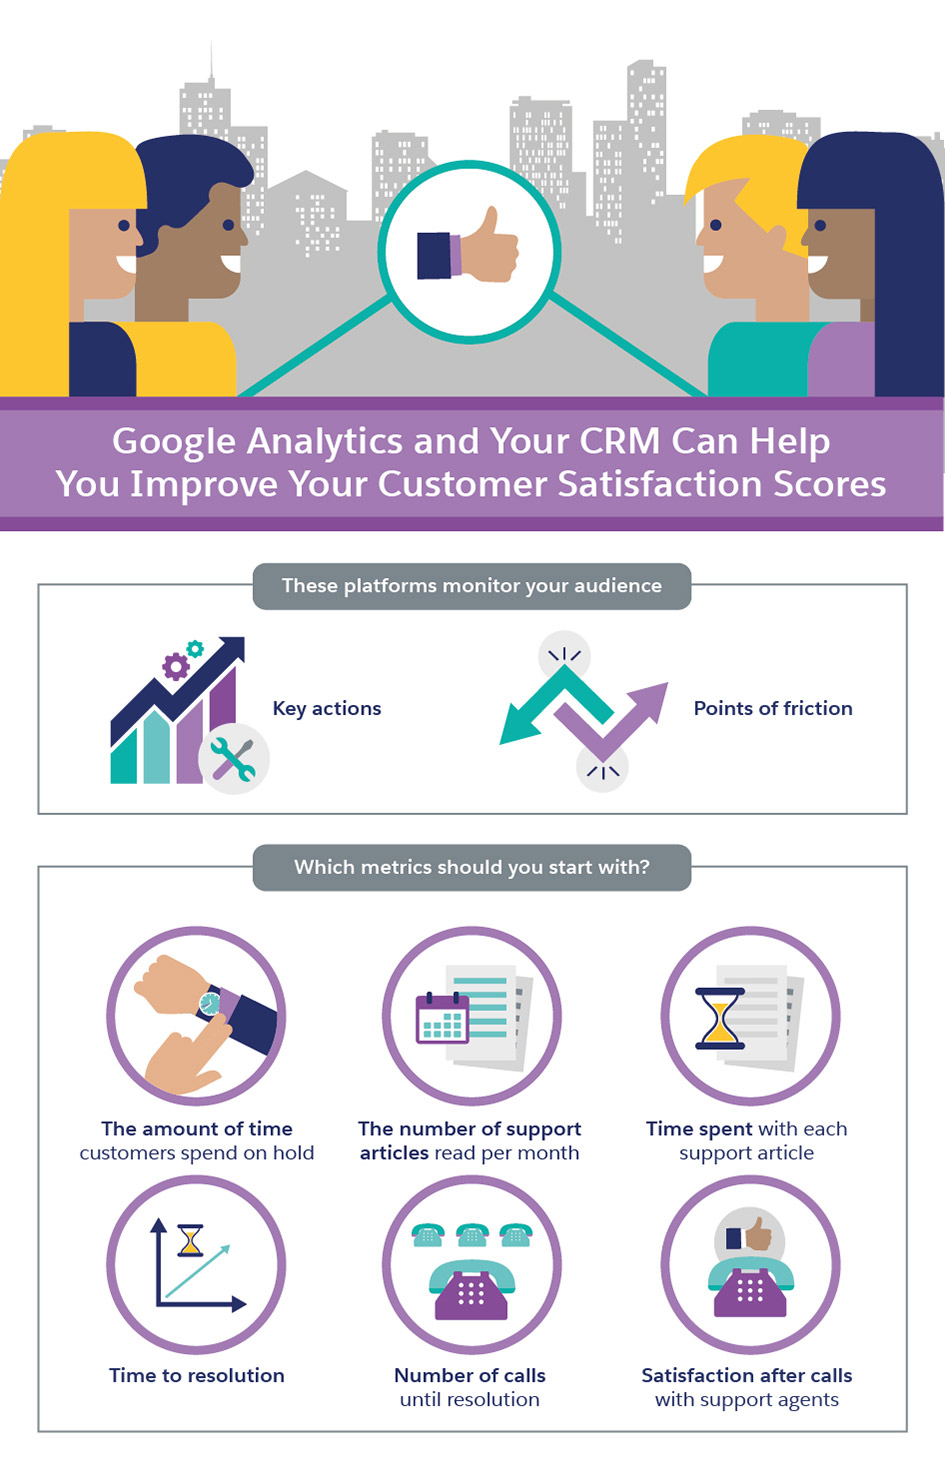 Google Analytics and Your CRM Can Help You Improve Your Customer Satisfaction Scores